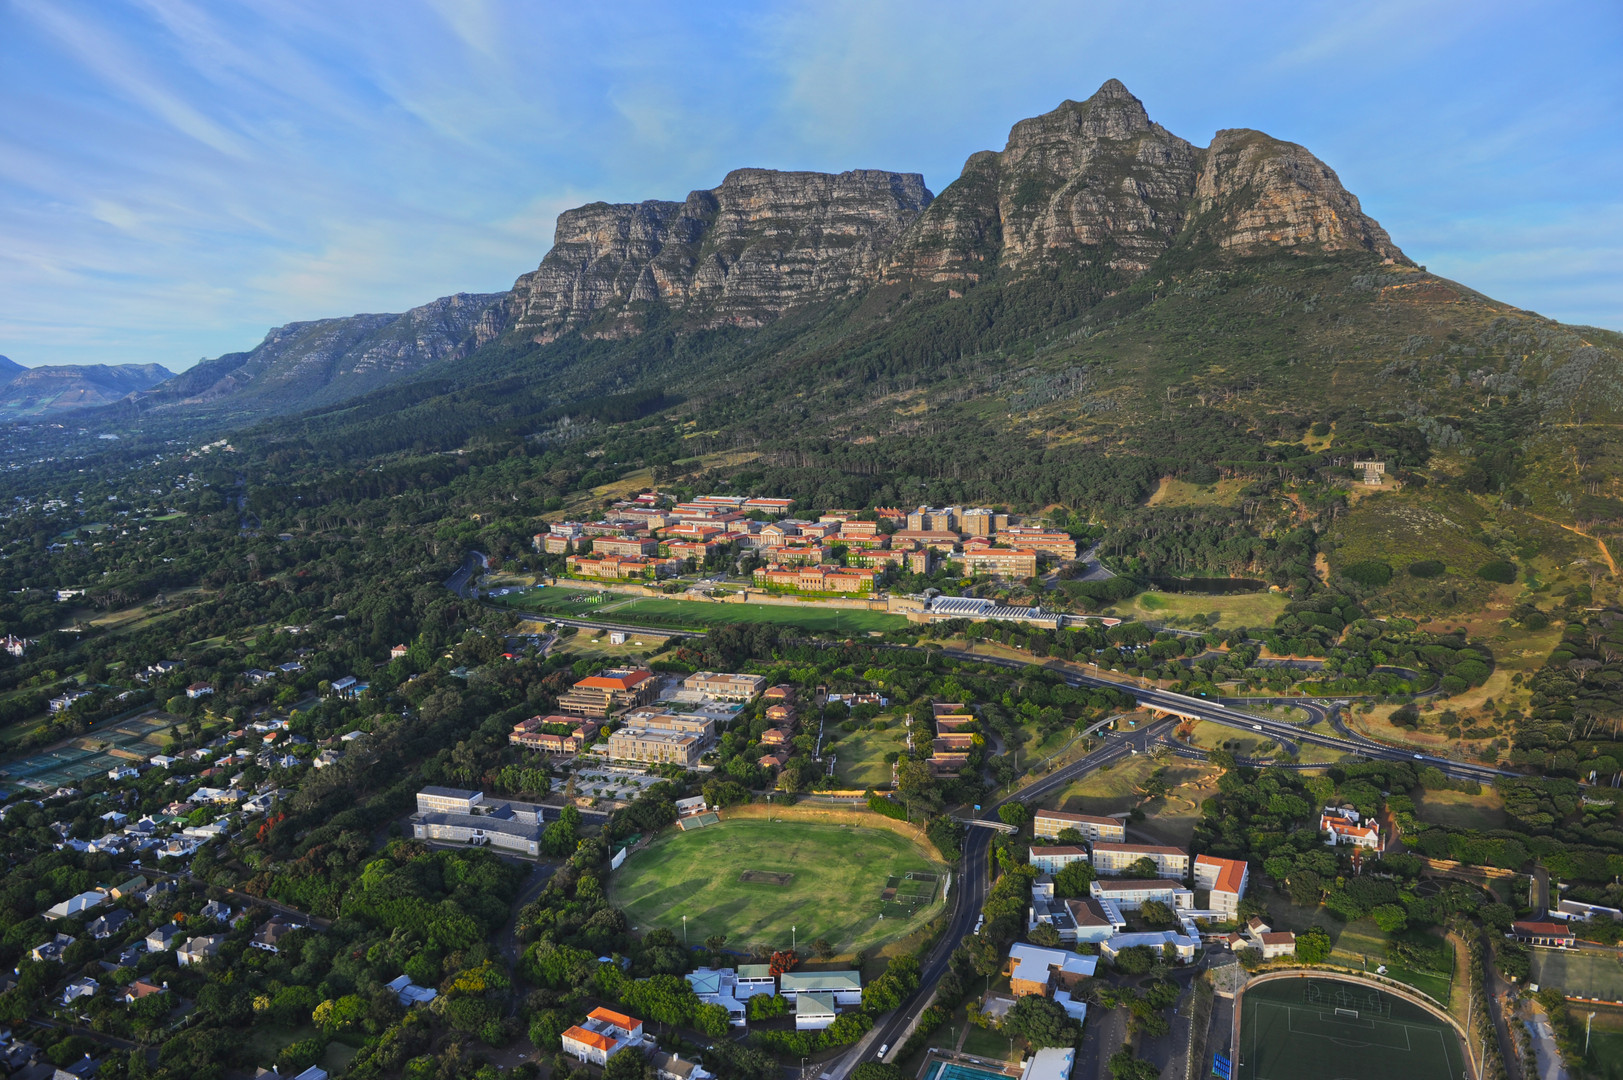 Bird's-eye view of the University of Cape Town, which is situated at the base of Table Mountain. Photographer: University of Cape Town / Michael Hammond